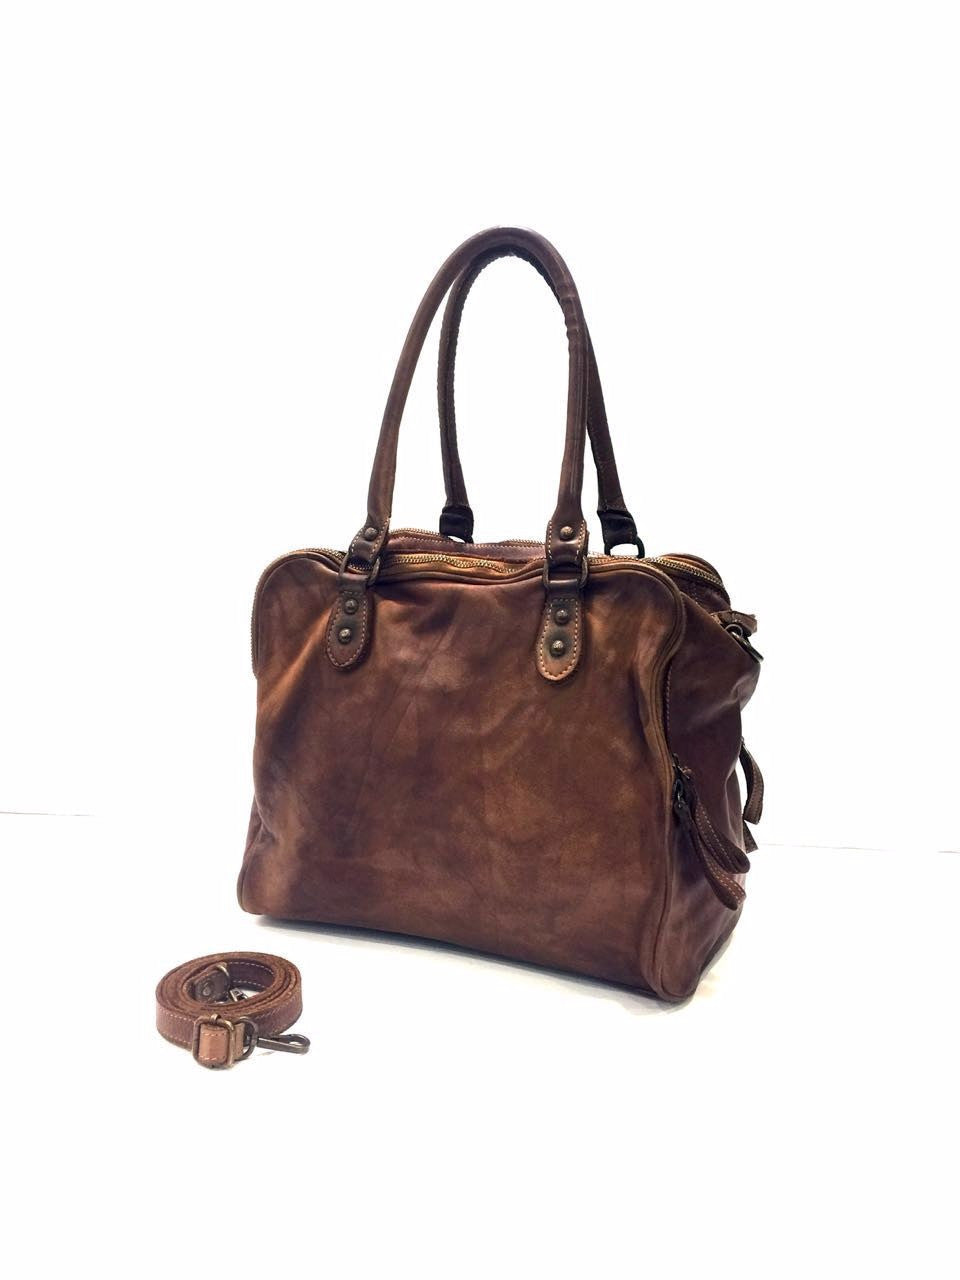 KASIA - Leather Bag - SOLD OUT